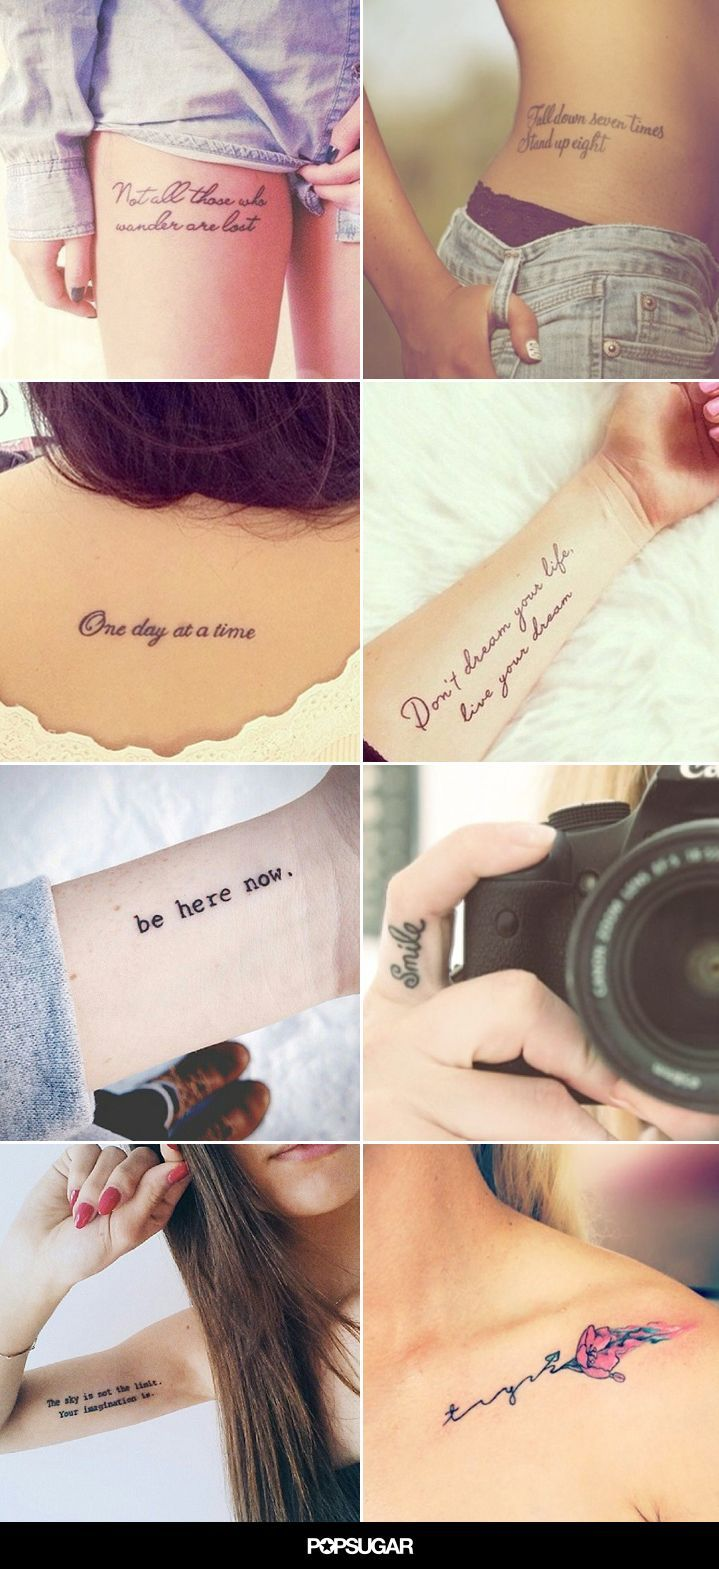 44 Quote Tattoos That Will Change Your Life #ink #tattoos #quotes